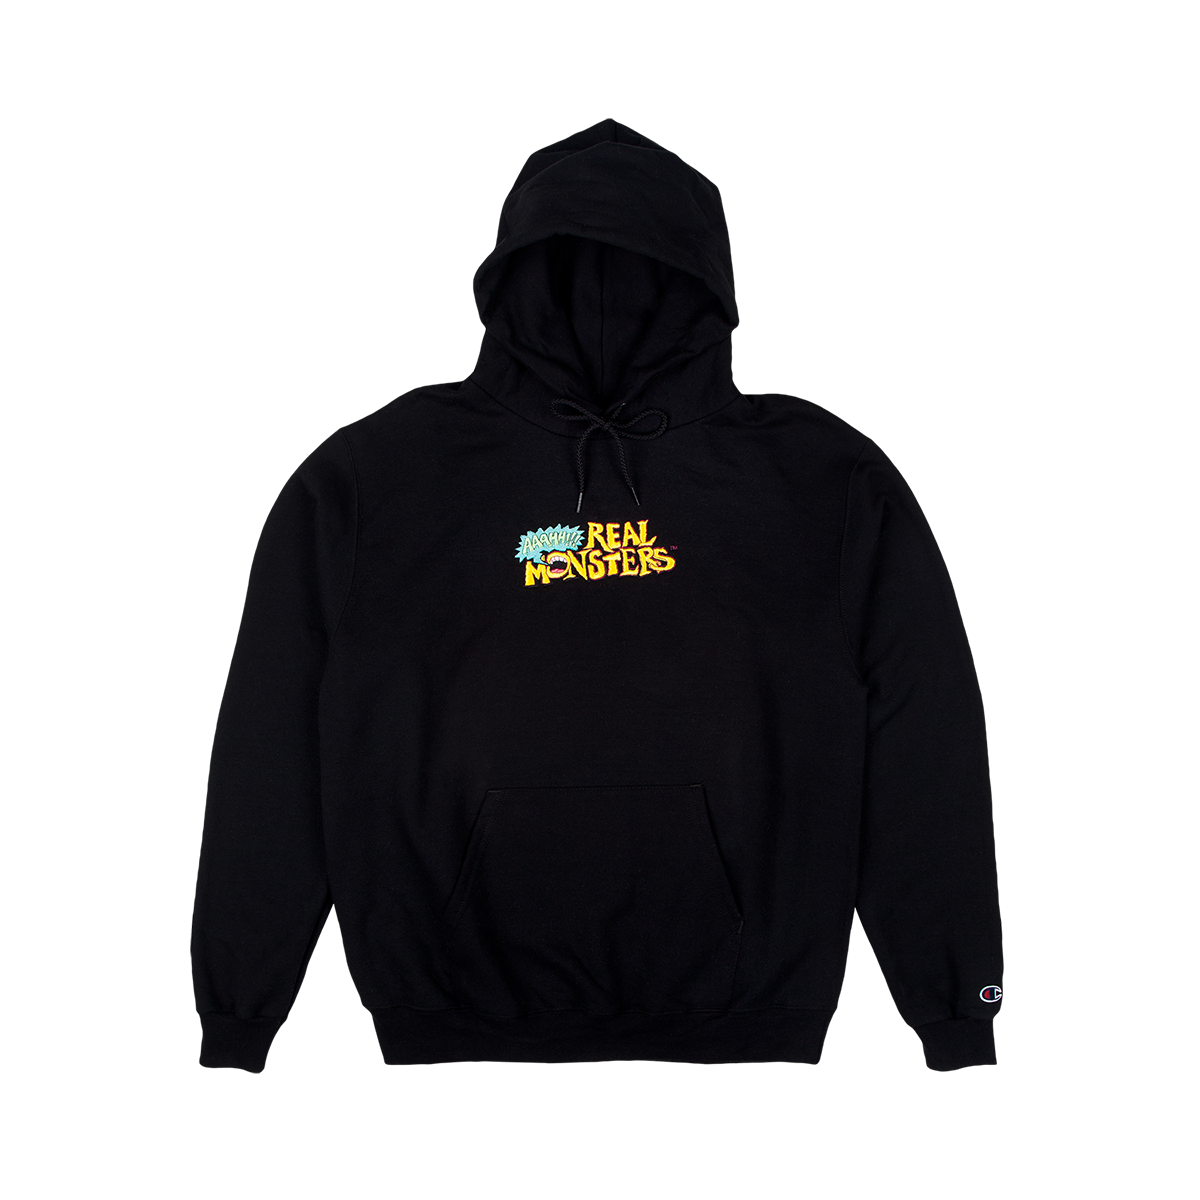 Ahh! Real Monsters Embroidered Champion Hoodie Black